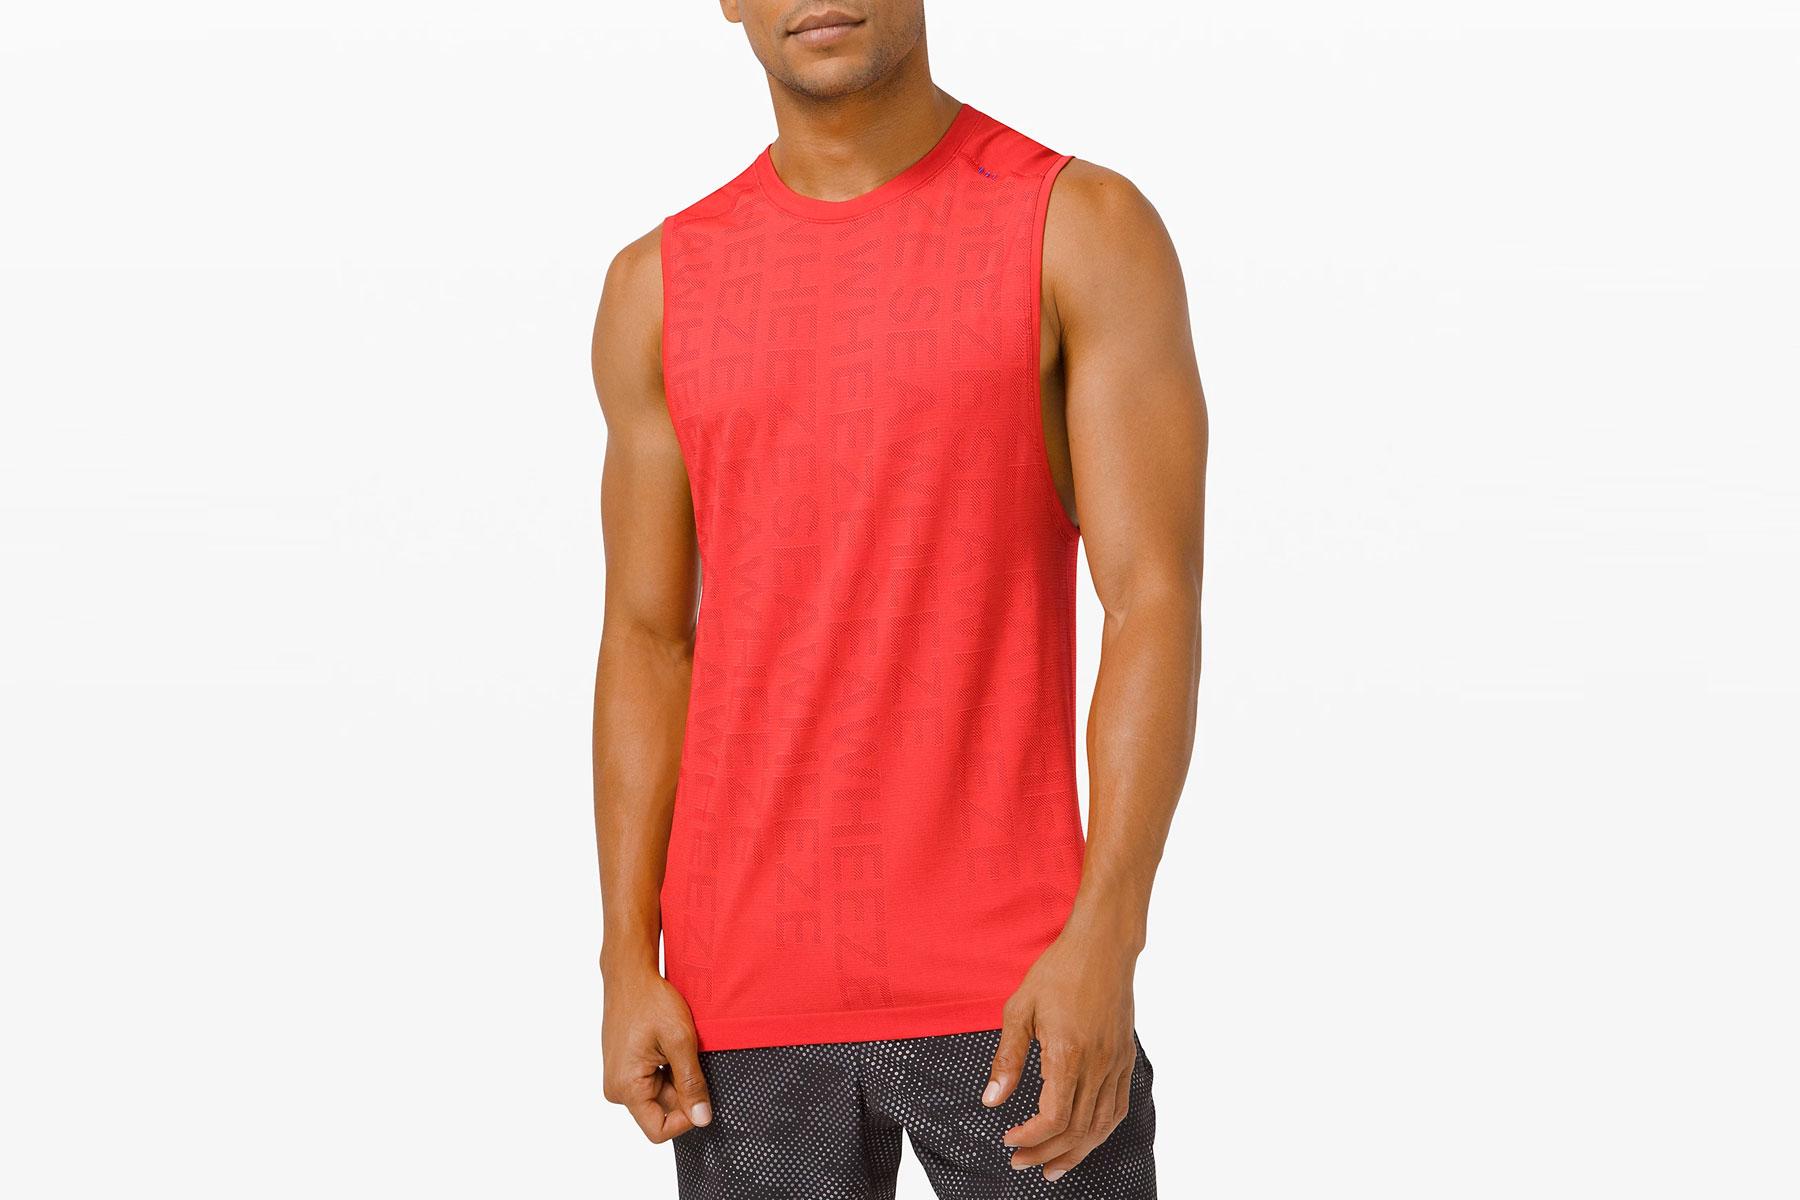 Men's red athletic tank